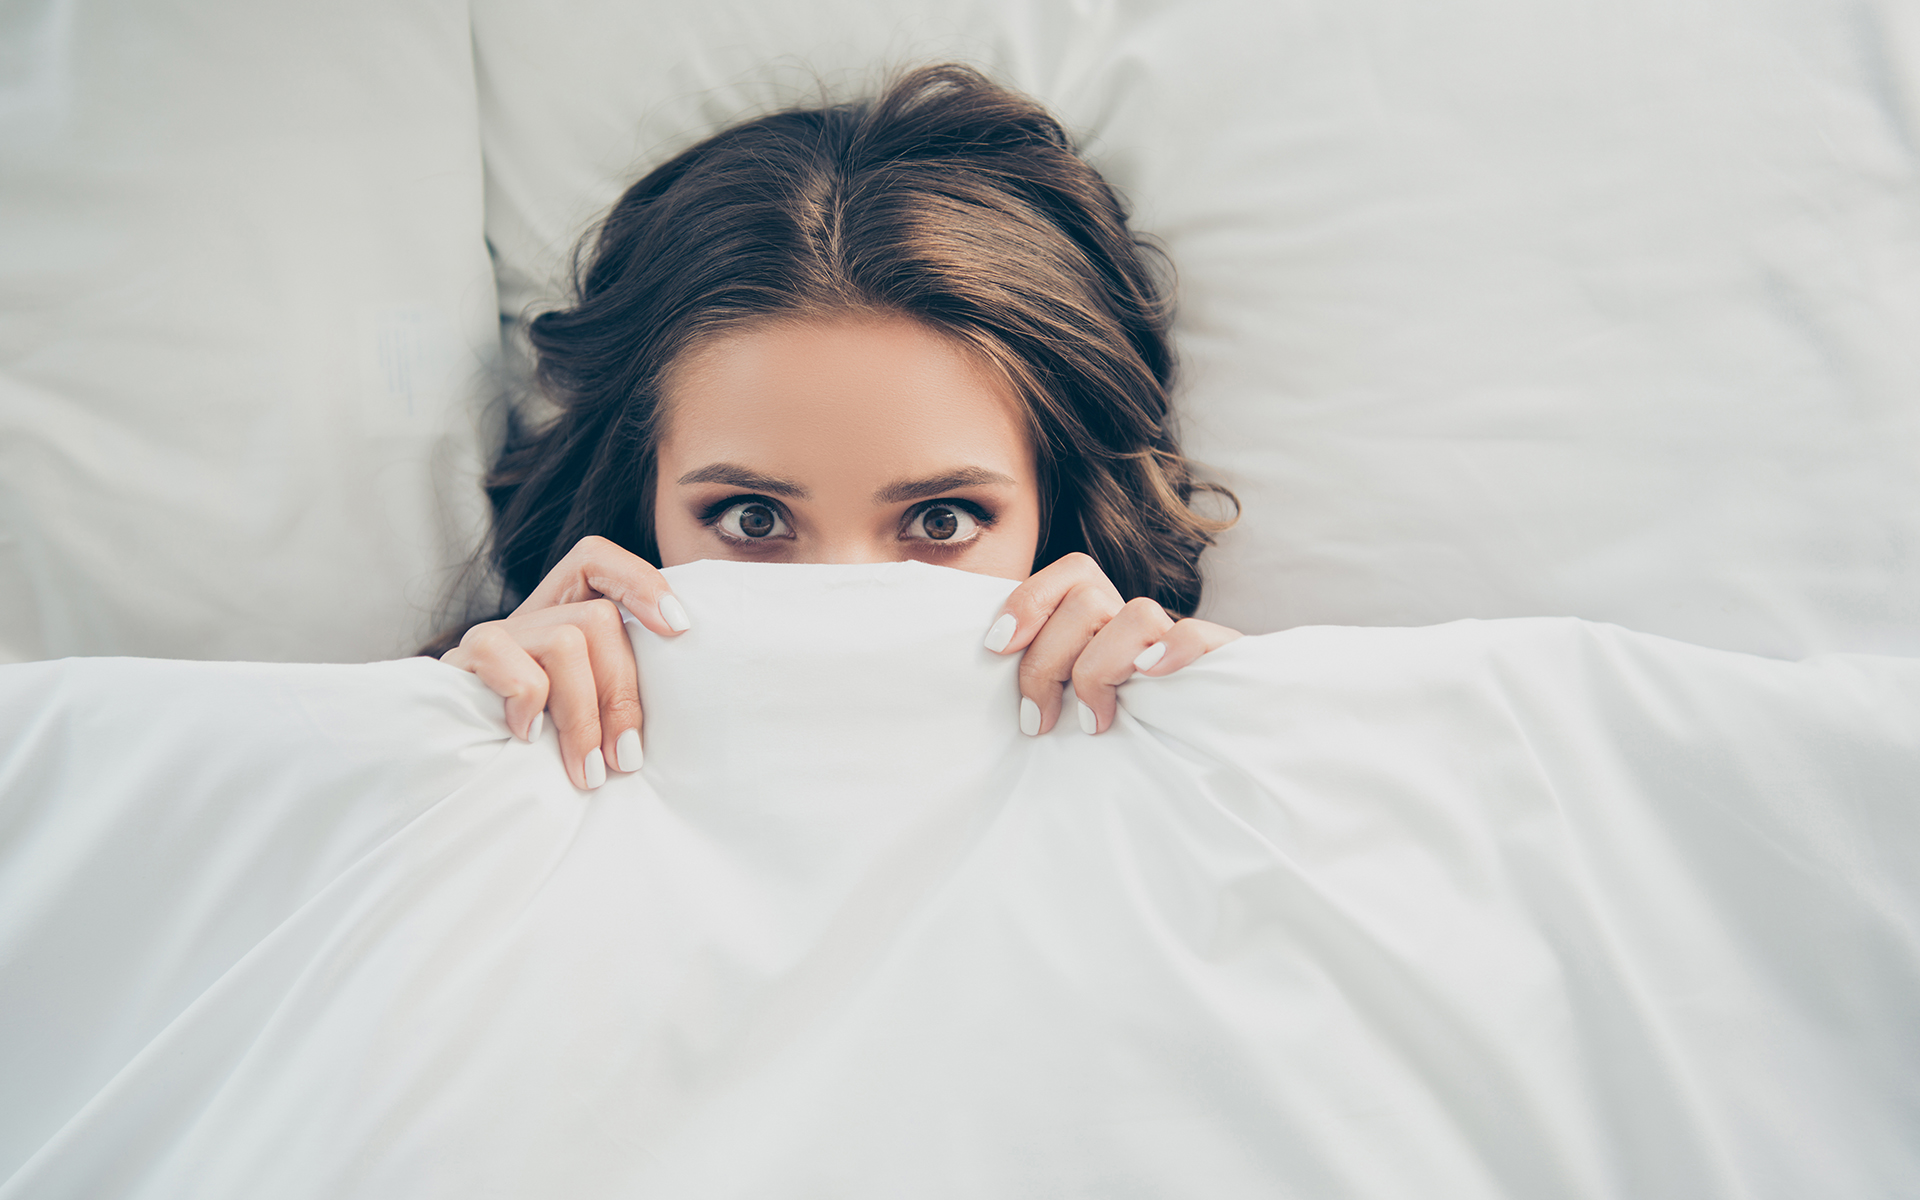 How Mindfulness Can Help You Navigate the Coronavirus Panic - Woman covering her face with a blanket in bed